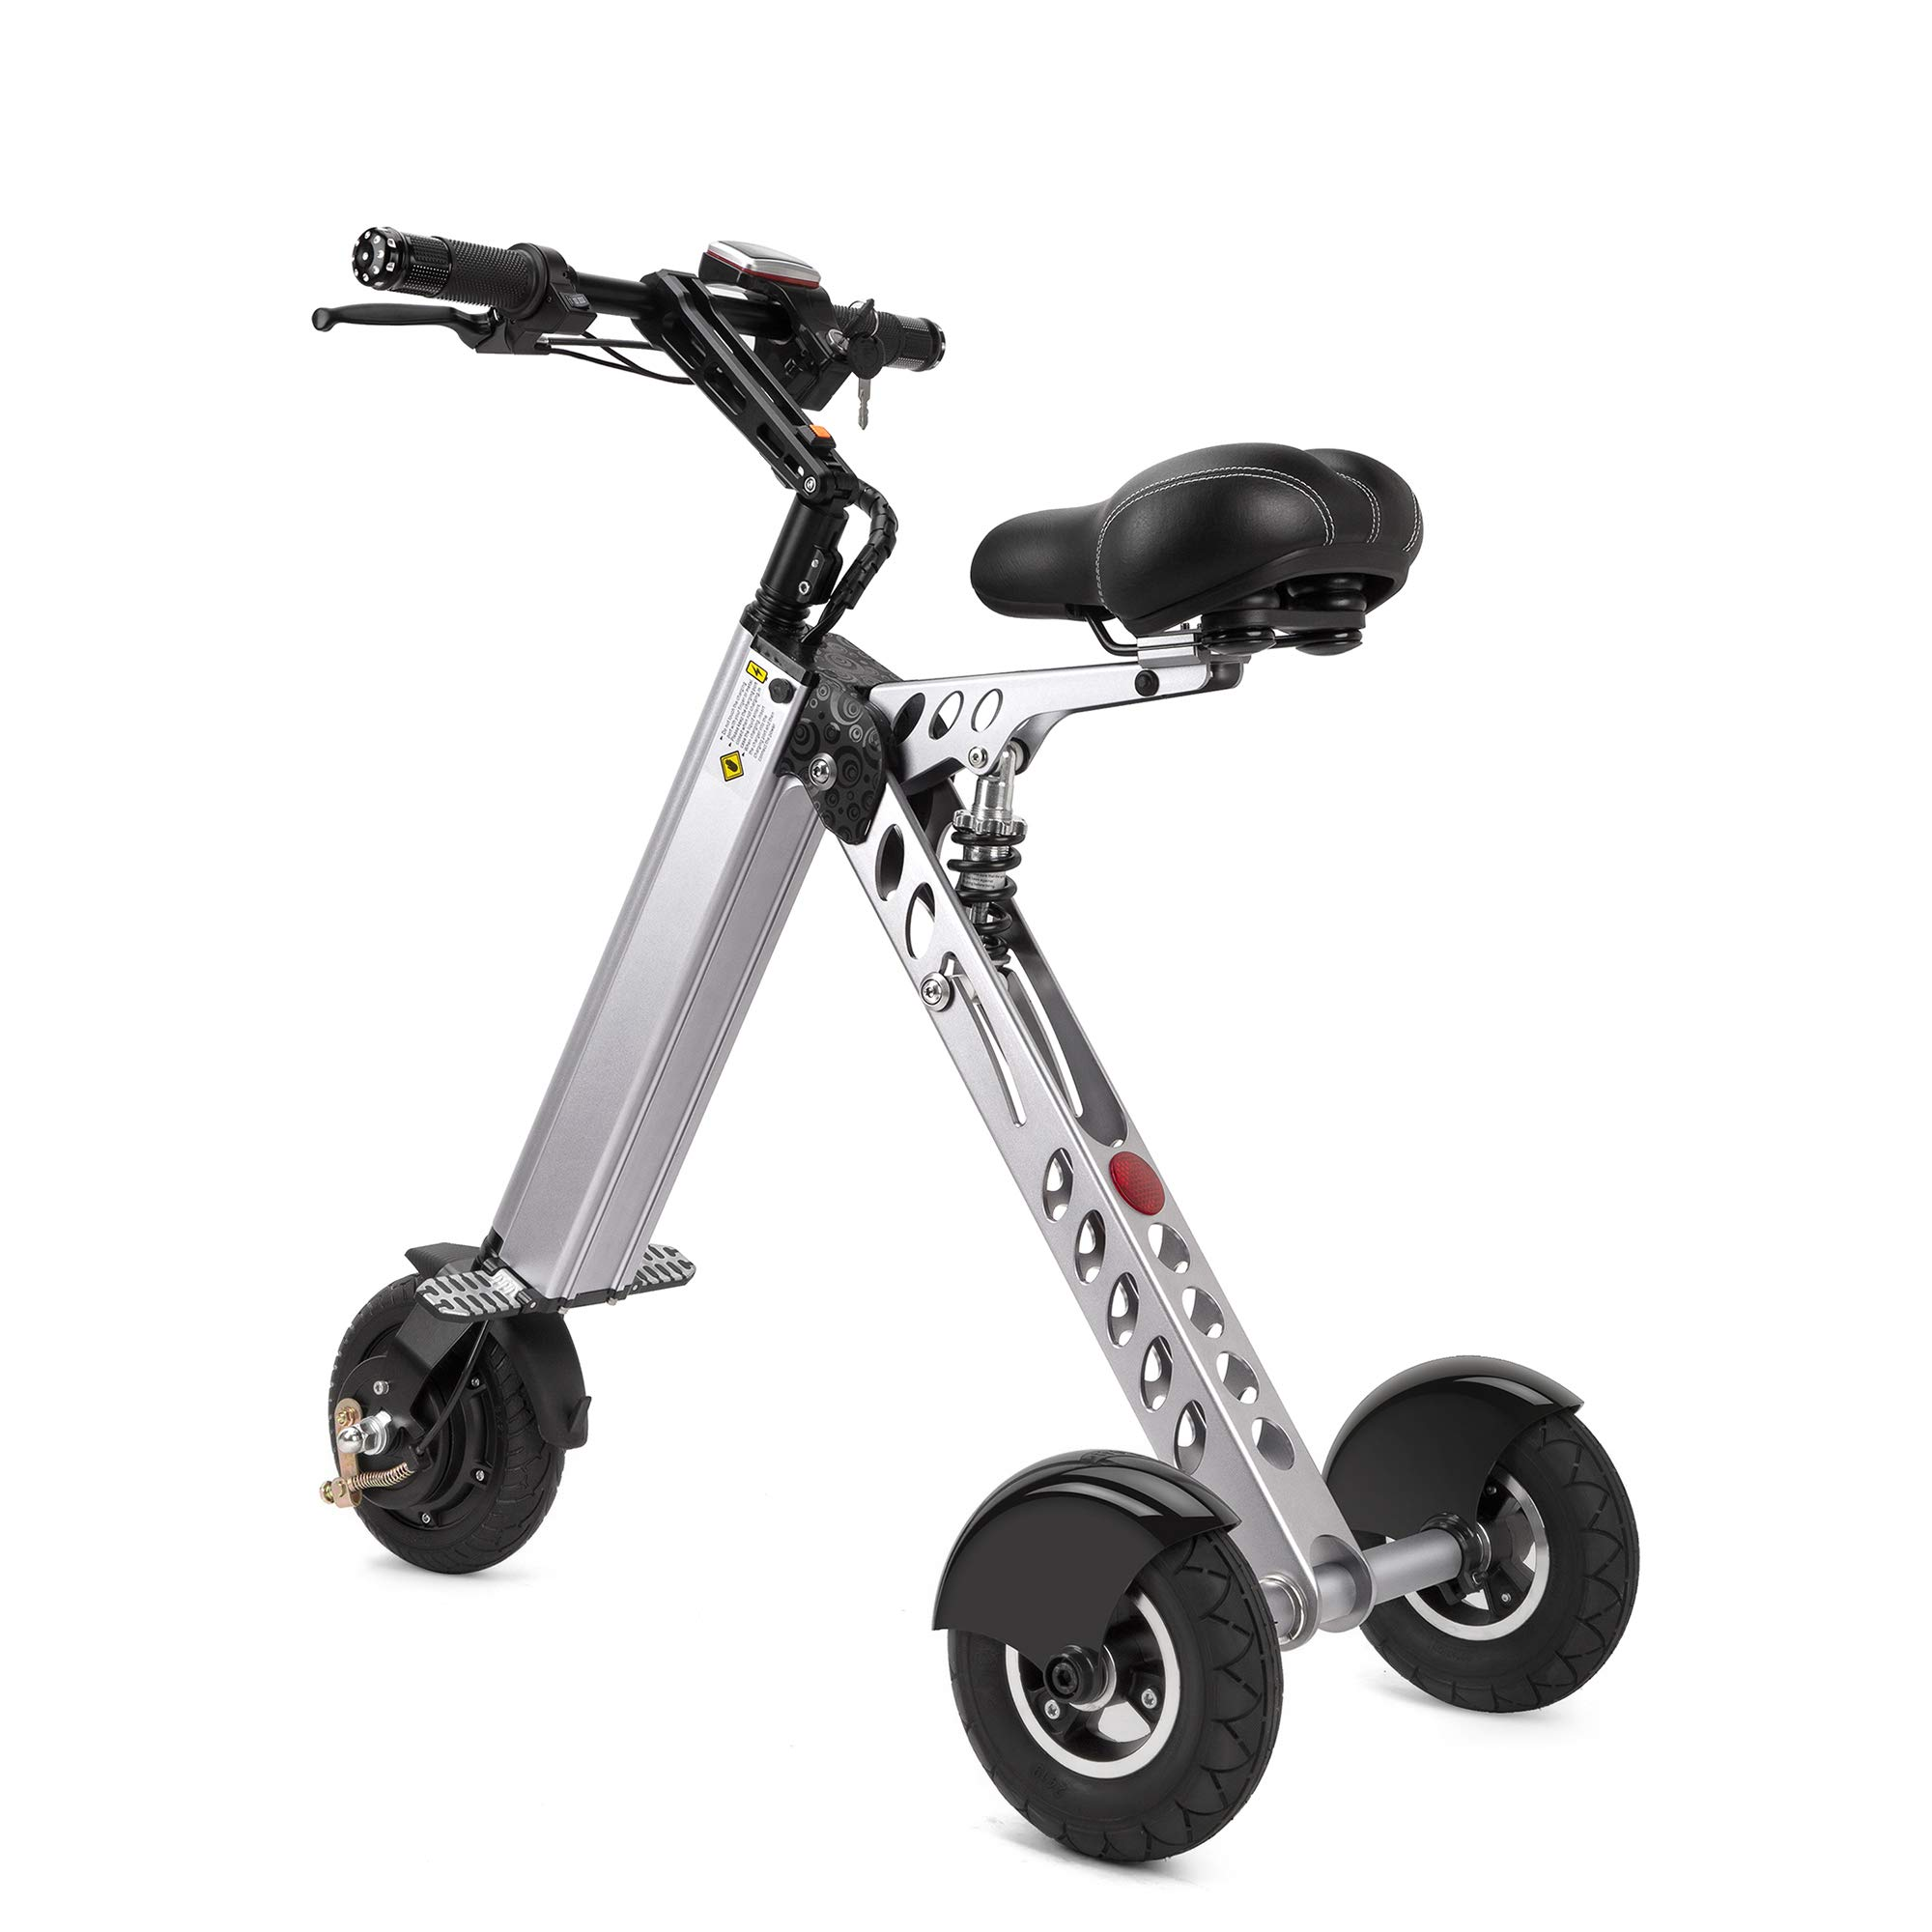 TopMate Electric Tricycle Mobility Assistance